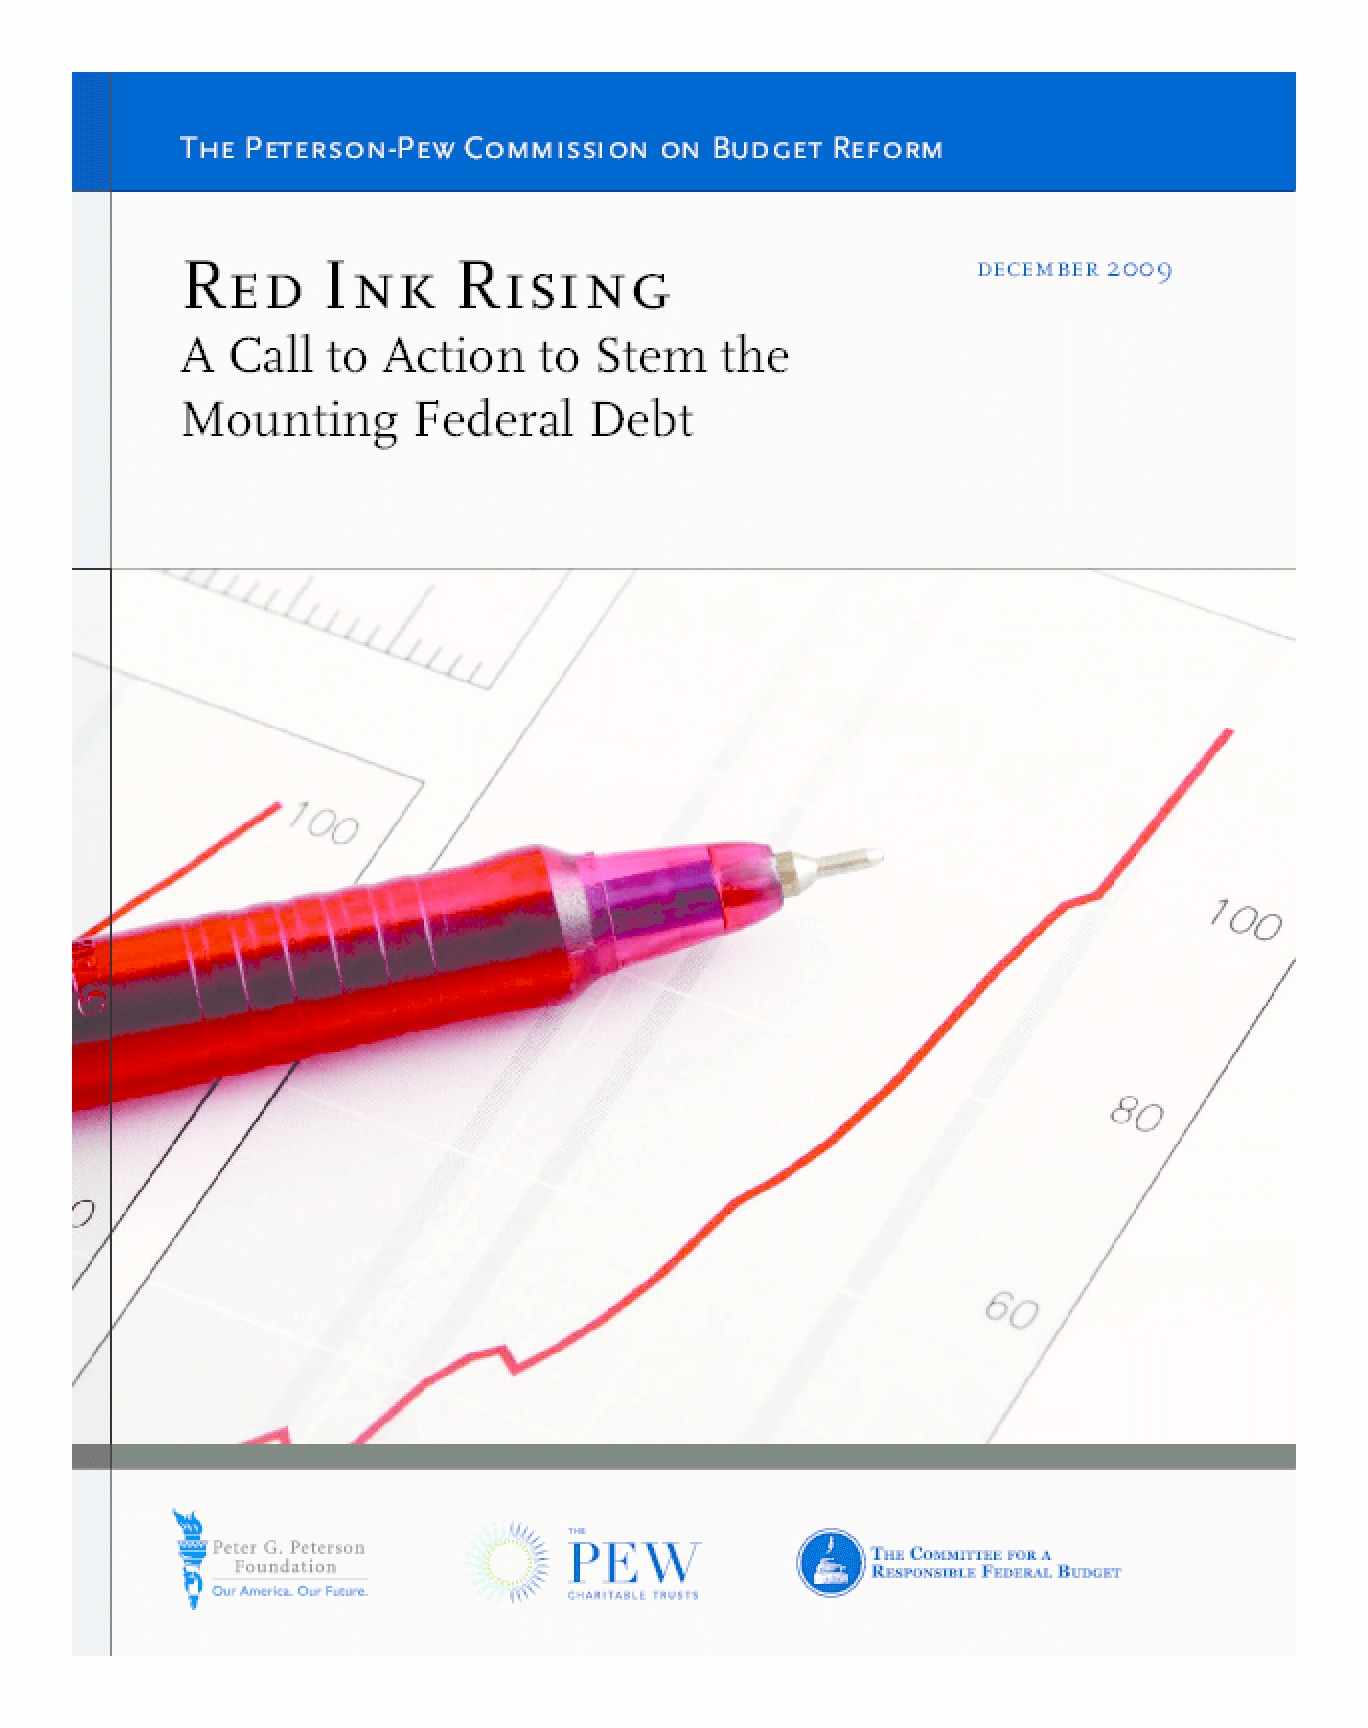 Red Ink Rising: A Call to Action to Stem the Mounting Federal Debt